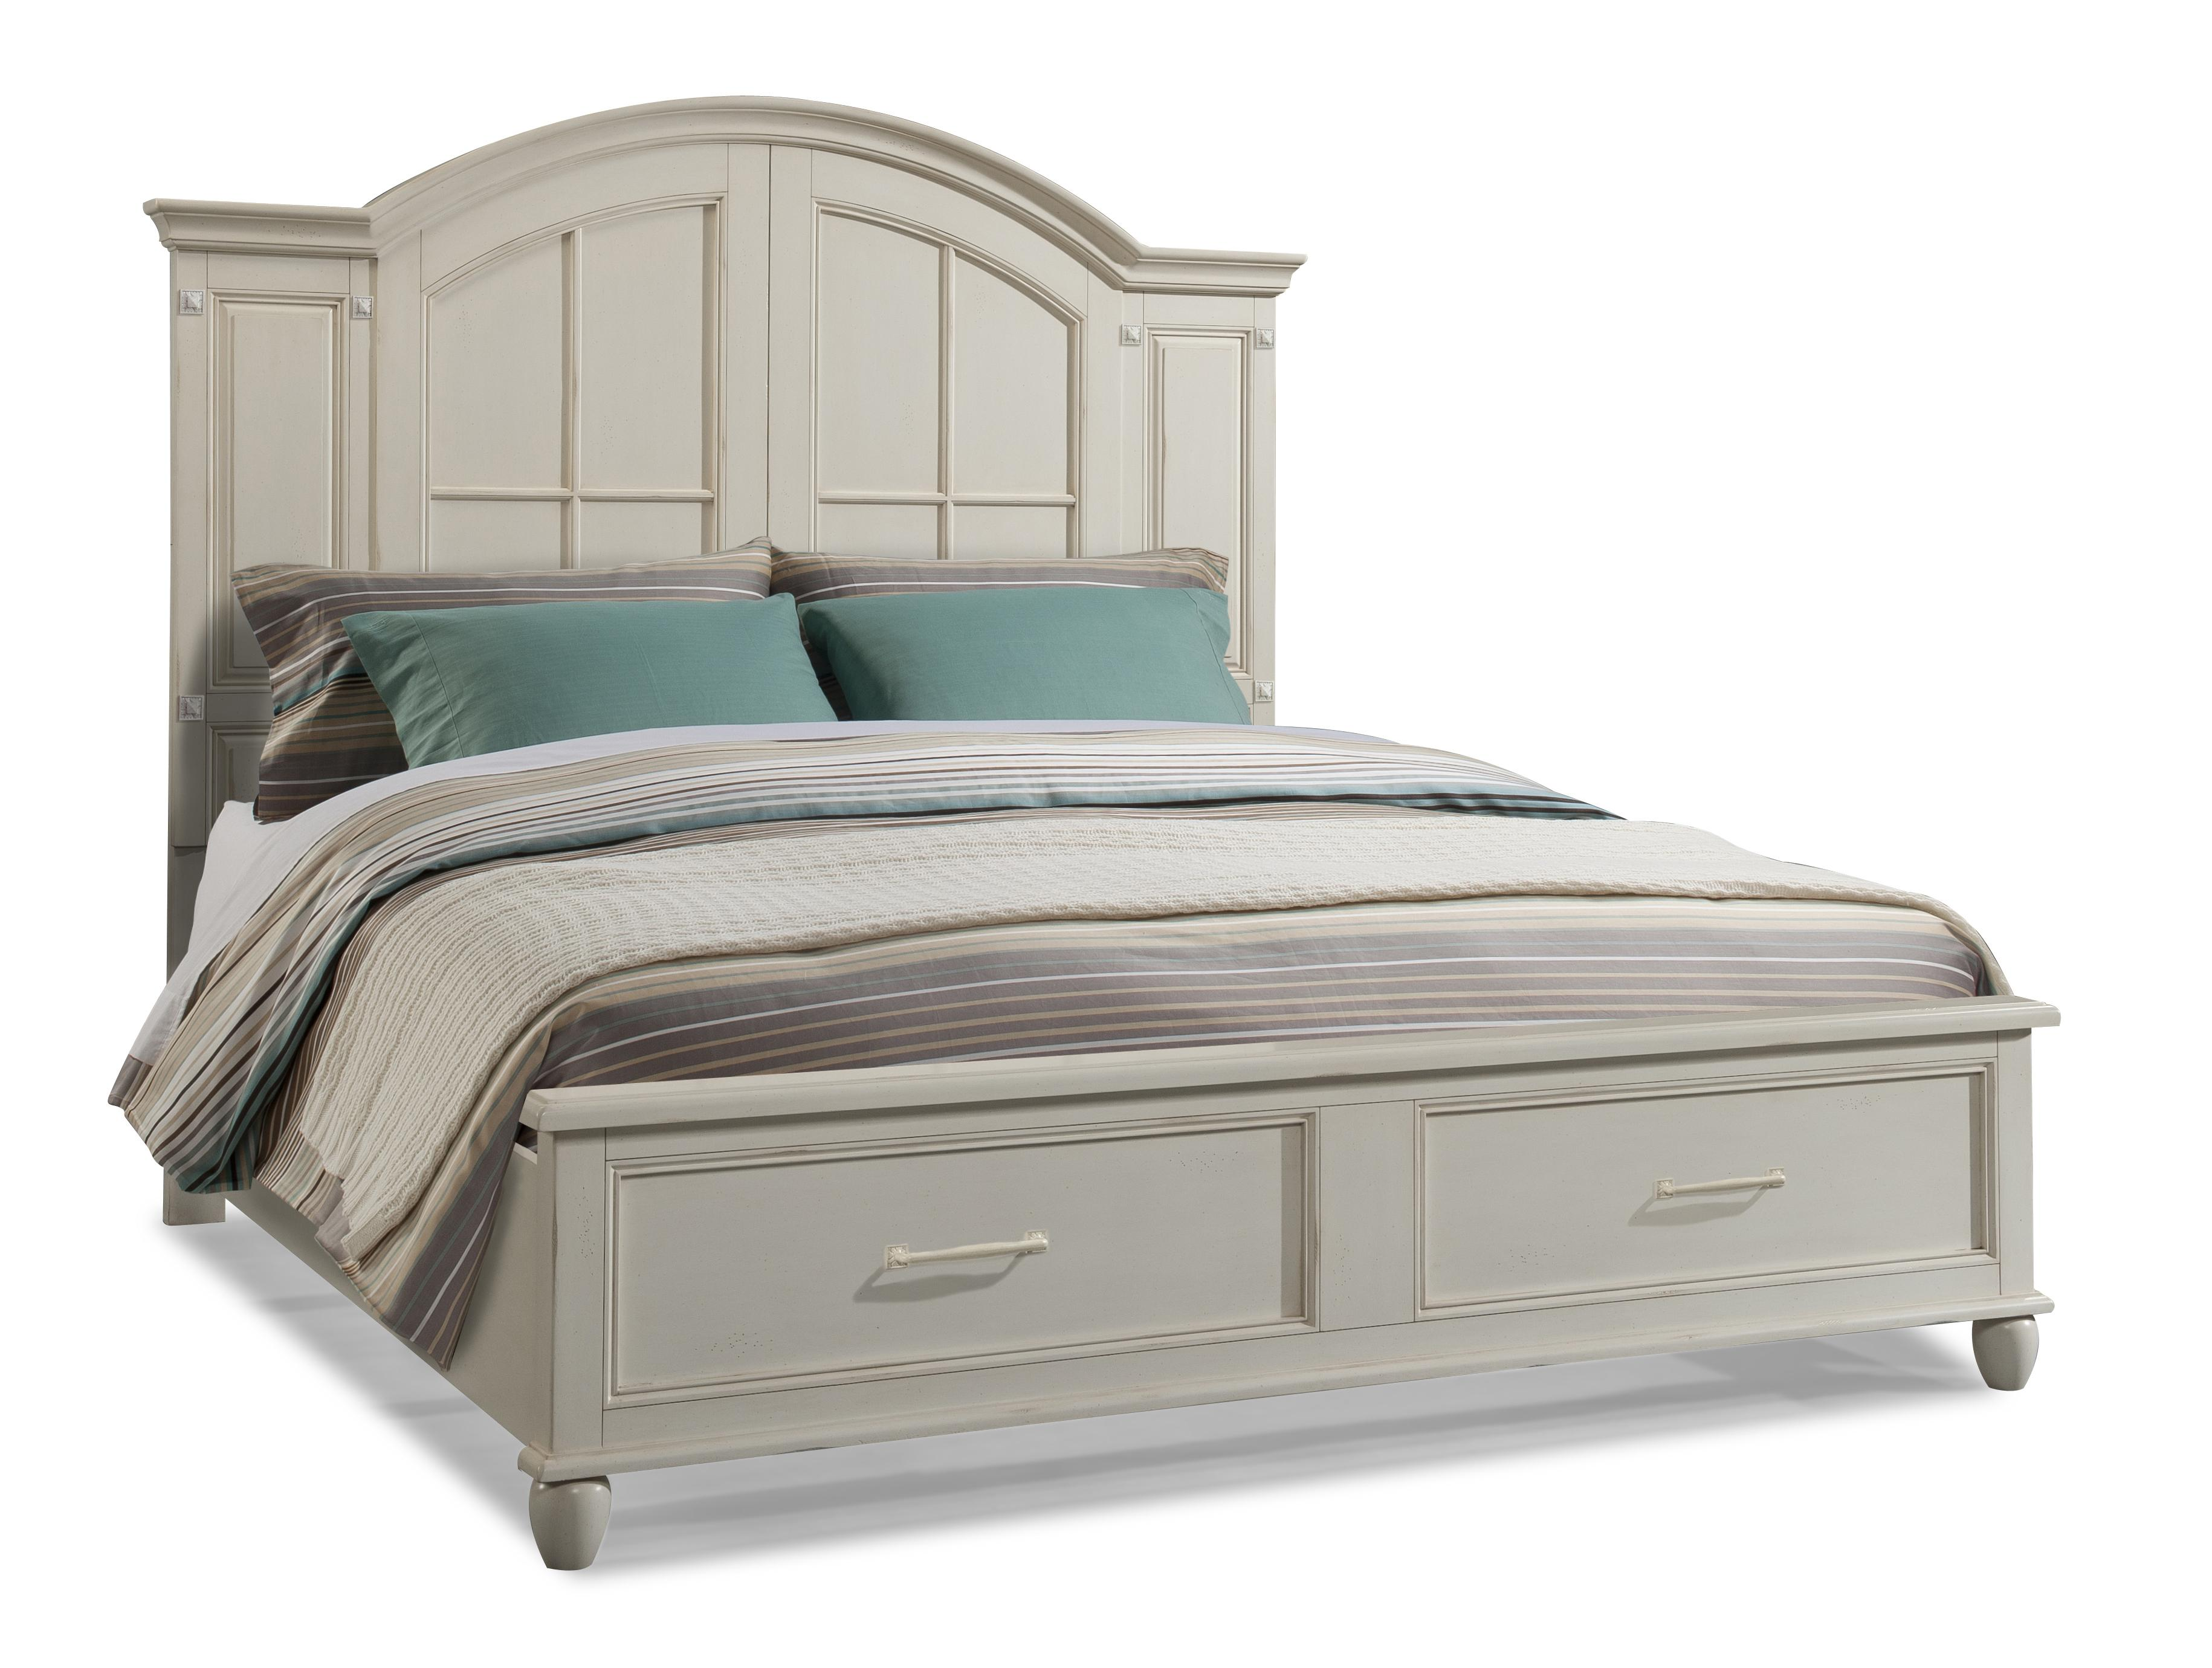 Easton Collection Sea Breeze Island Bliss-White King Panel Storage Bed - Item Number: 425-166 KBED